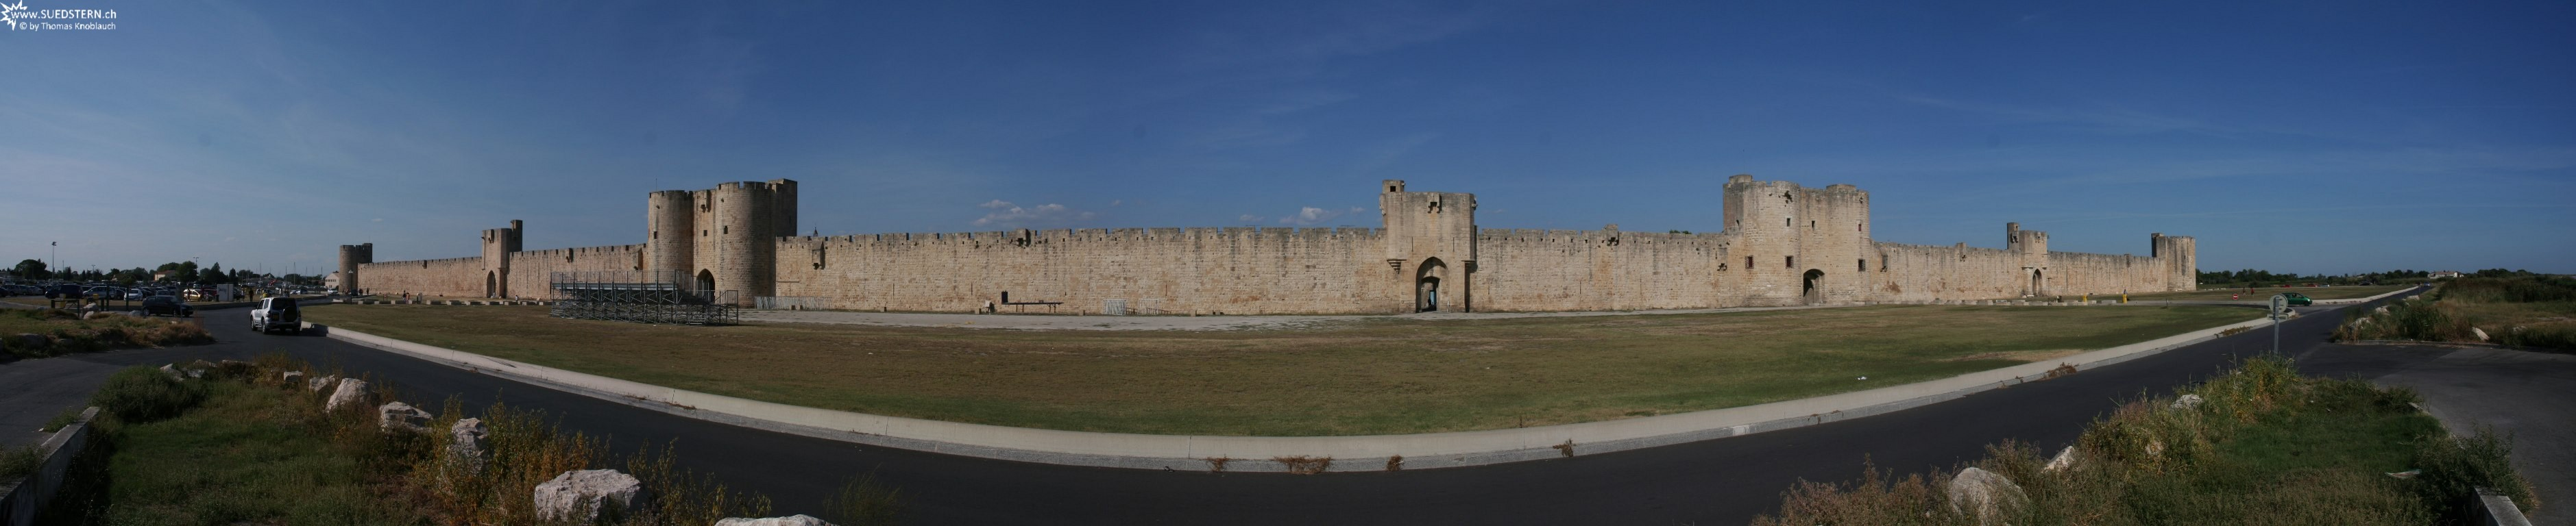 2008-08-27 - Panorama of city wall of Aigues-Mortes 4, france